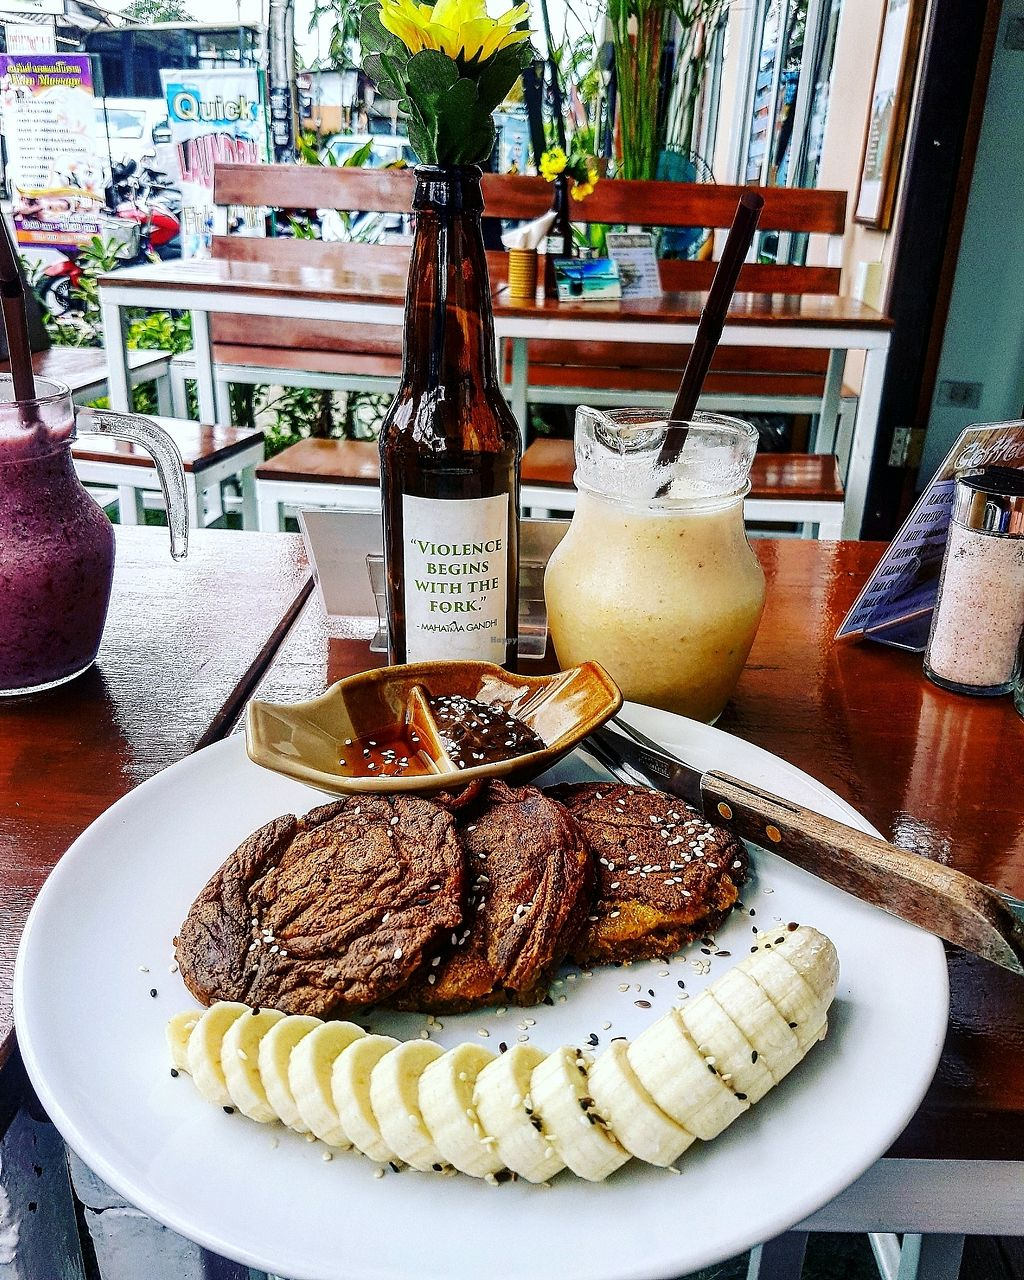 """Photo of Pure Vegan Heaven  by <a href=""""/members/profile/rachaelcherry"""">rachaelcherry</a> <br/>sweet potato and banana pancakes and pineapple, orange amd banana smoothie <br/> September 27, 2017  - <a href='/contact/abuse/image/72425/308960'>Report</a>"""